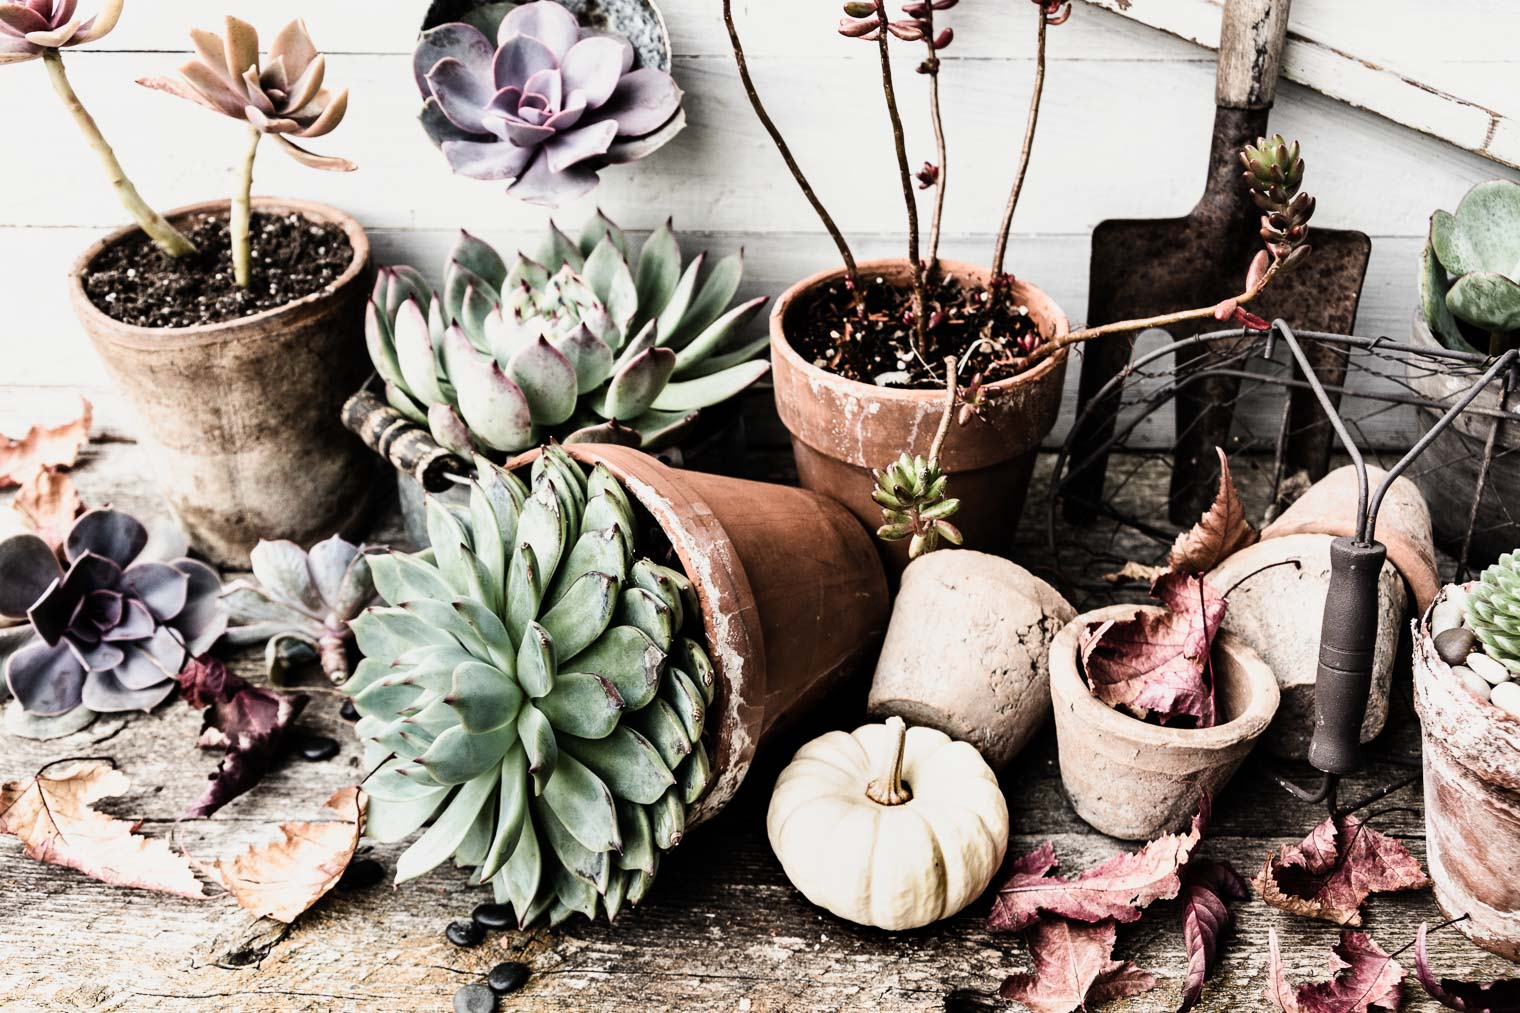 Succulent Parade, Barb Brookbank, Keeping With the Times